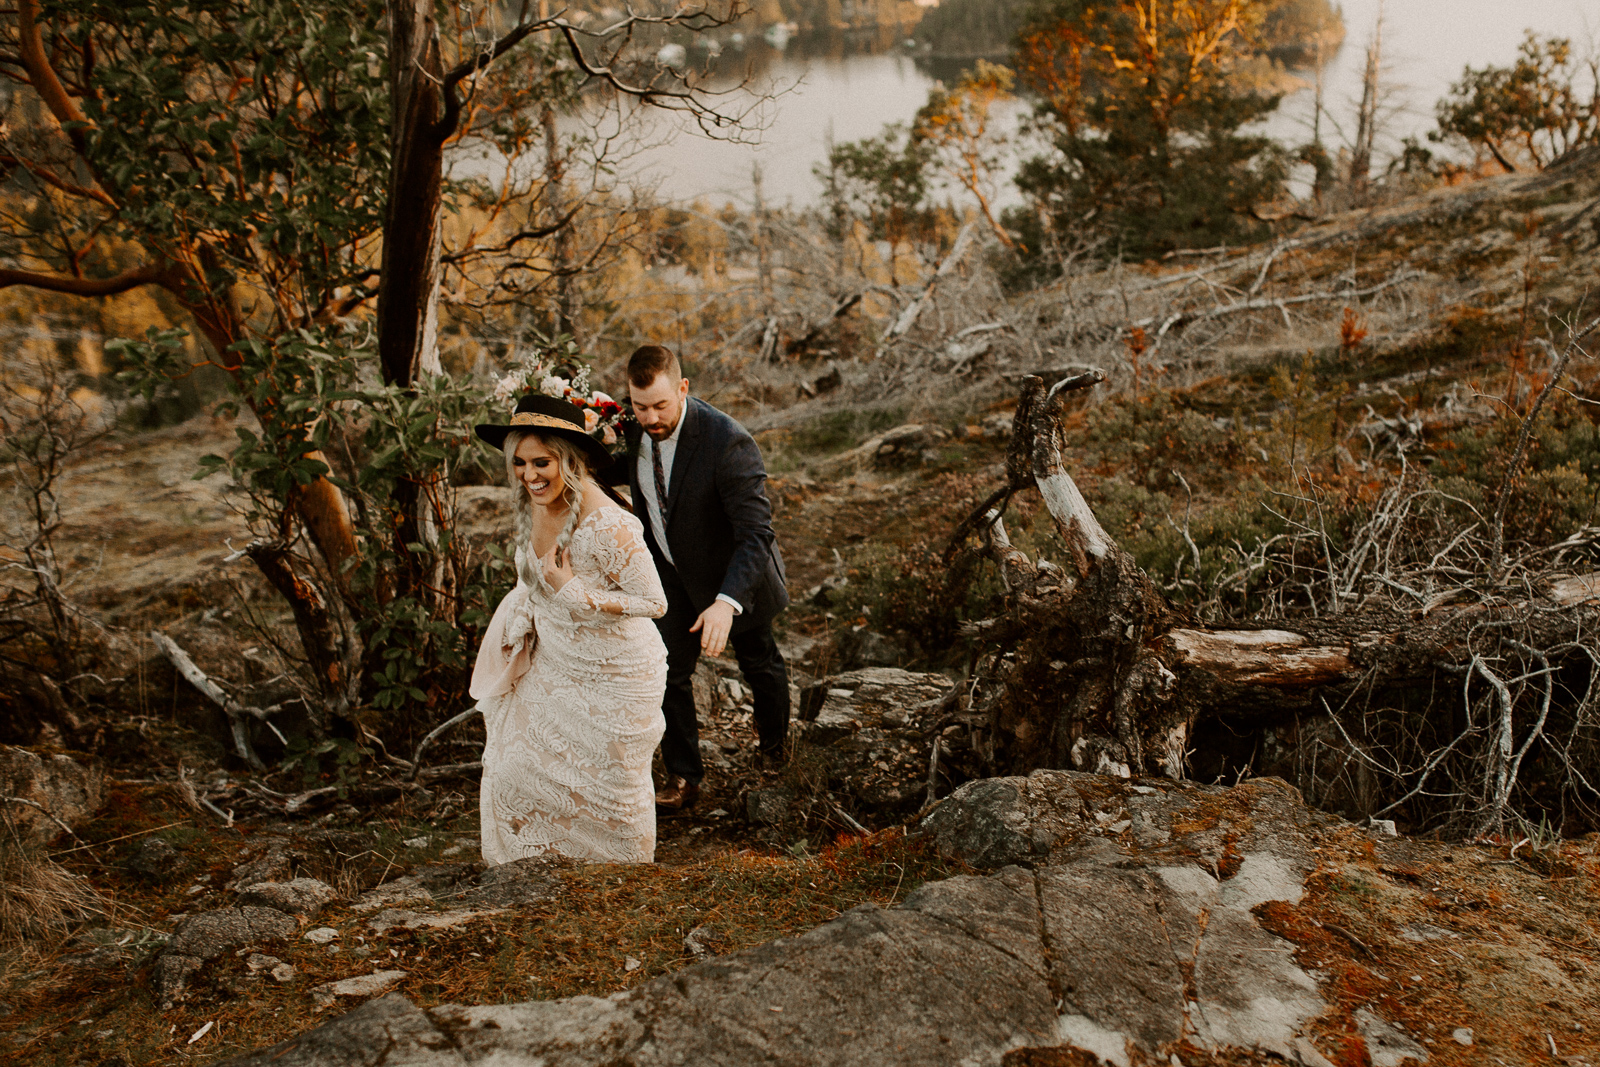 Luke Lambertson Photo_BritishColumbia_Canada_AdventurousCouple_Elopement_IMG-8330.jpg